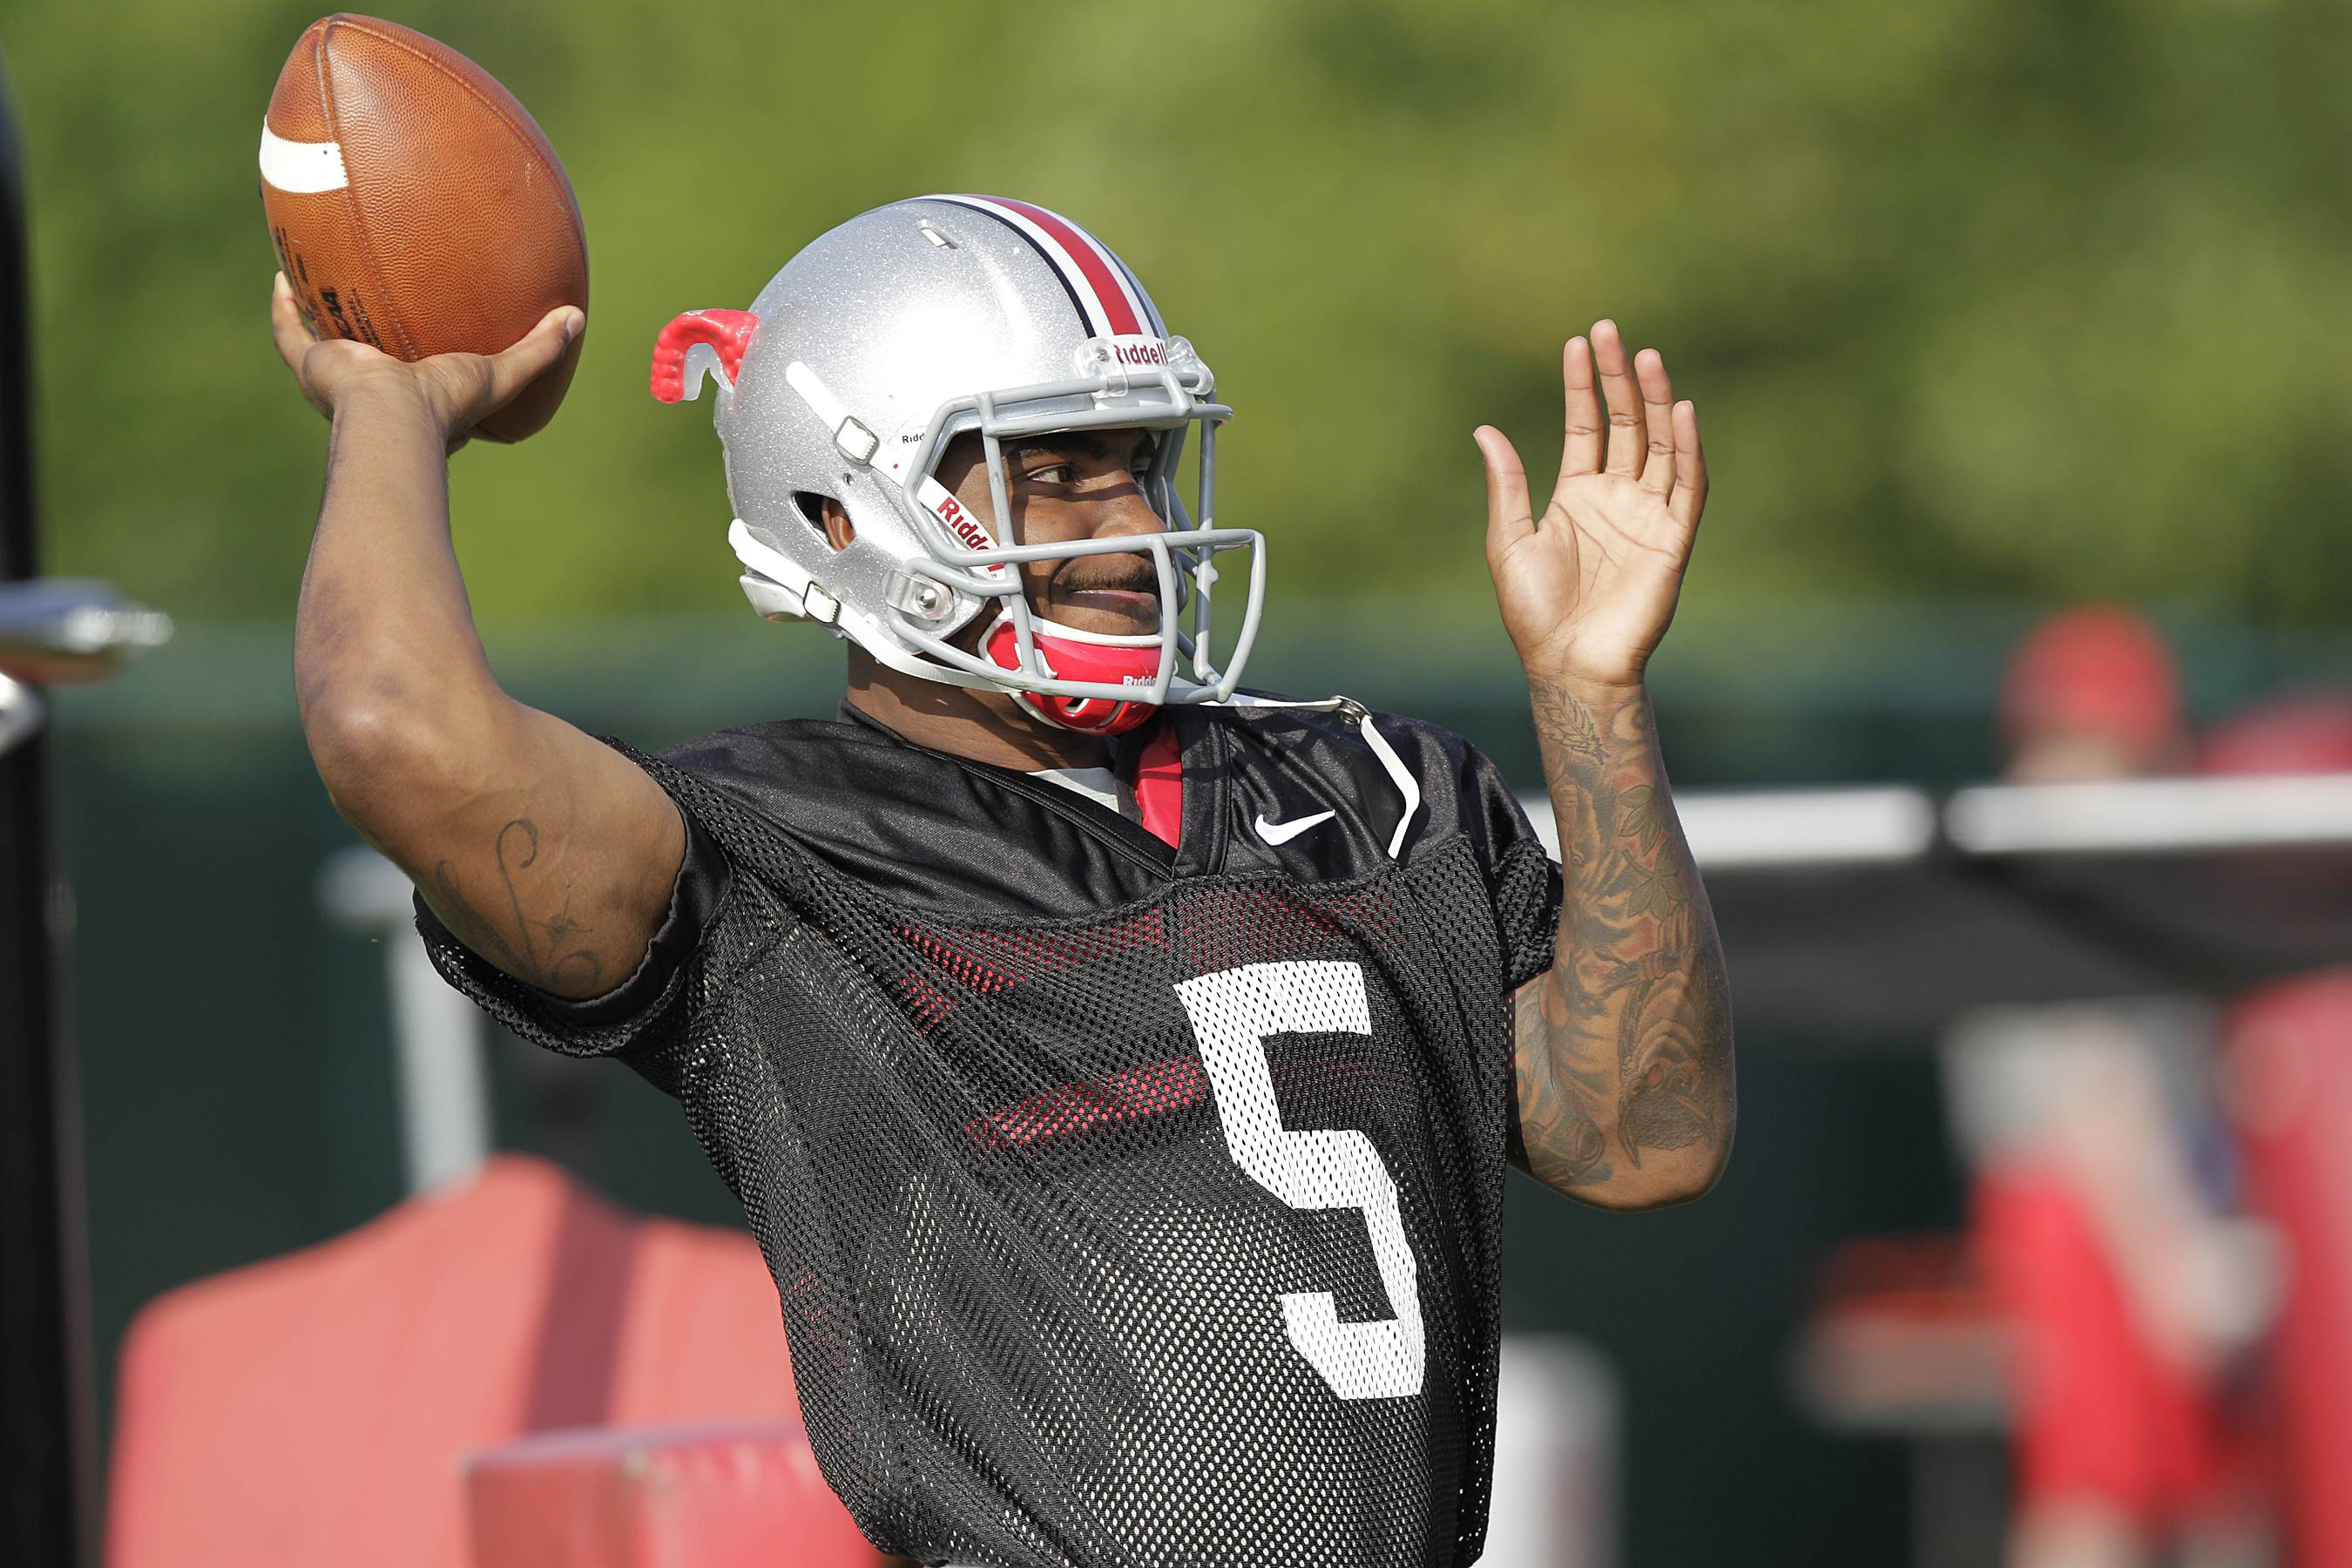 Ohio State quarterback Braxton Miller, among the top contenders for the Heisman Trophy, reportedly reinjured his throwing shoulder Monday during practice. The report about the two-time Big Ten offensive player of the year comes with just more than two weeks before the No. 5 Buckeyes open the season.